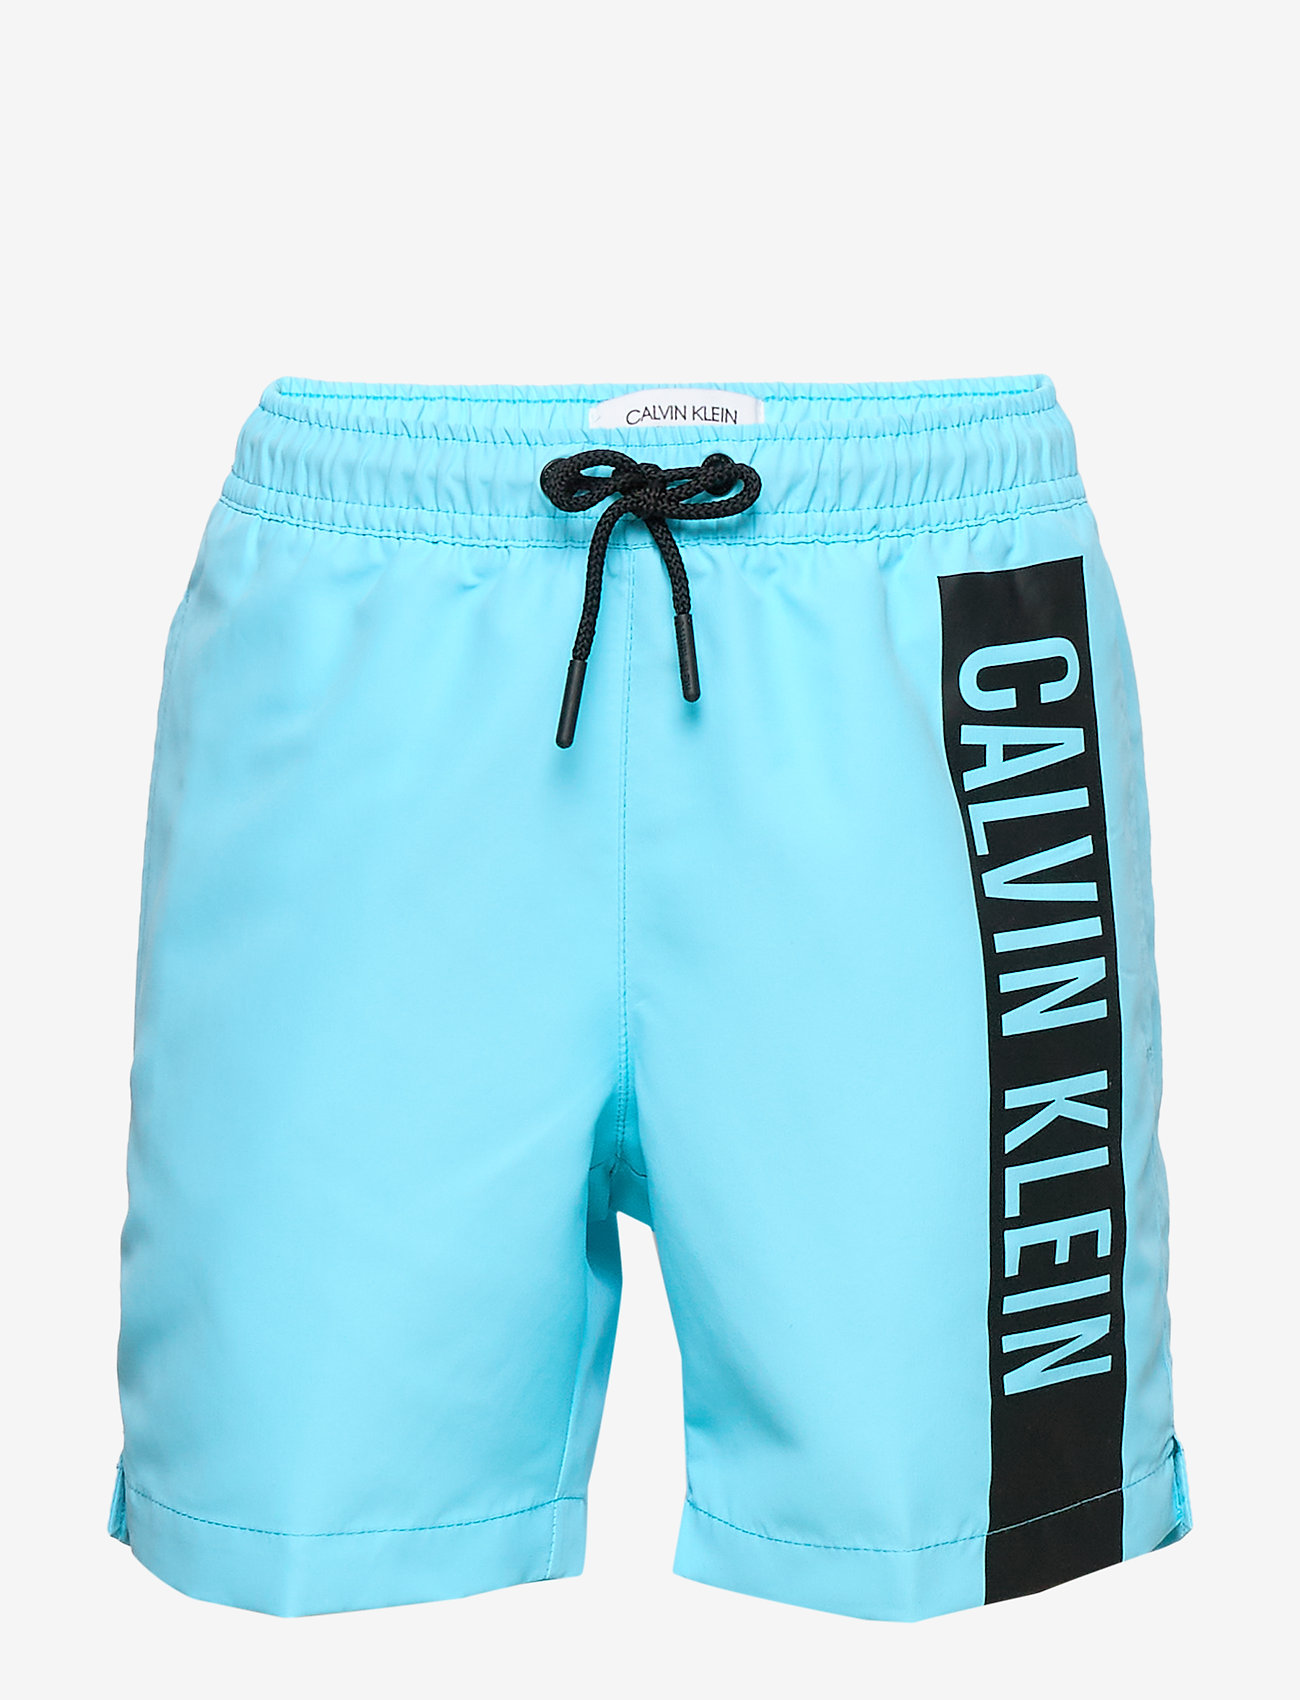 Calvin Klein - MEDIUM DRAWSTRING - zwembroeken - bluefish - 0